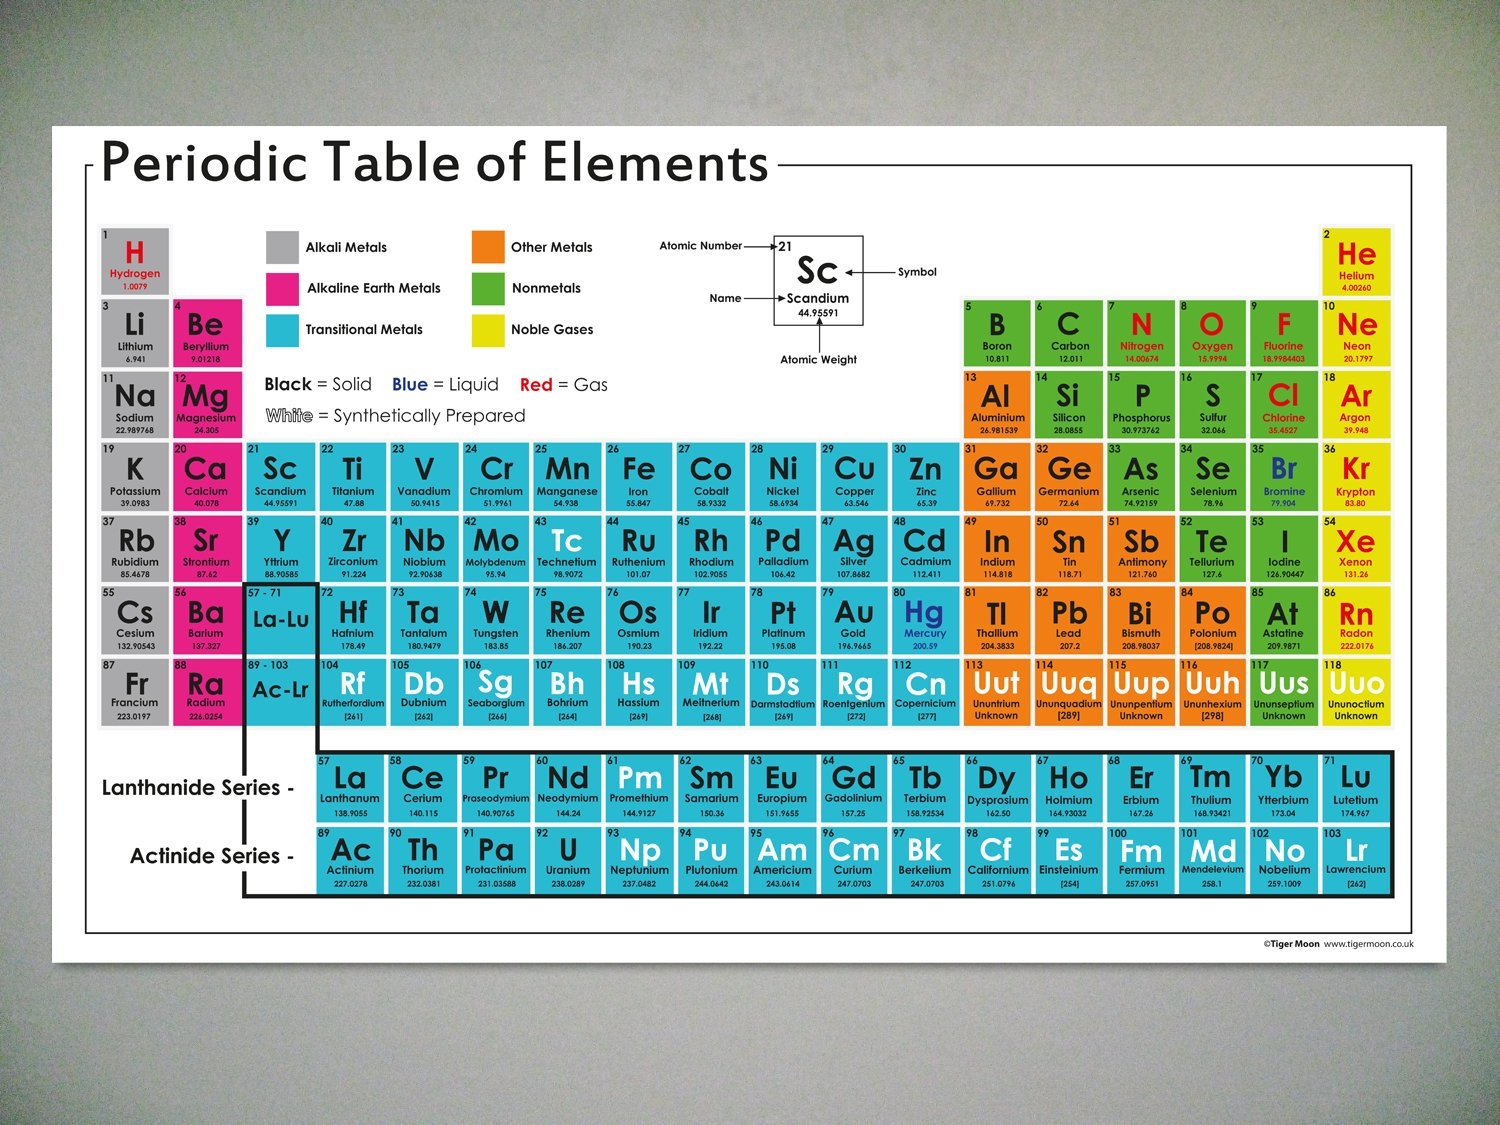 Periodic table of elements large laminated poster 100 x 60 cm periodic table of elements large laminated poster 100 x 60 cm school science classroom resourcedecoration amazon office products gamestrikefo Gallery